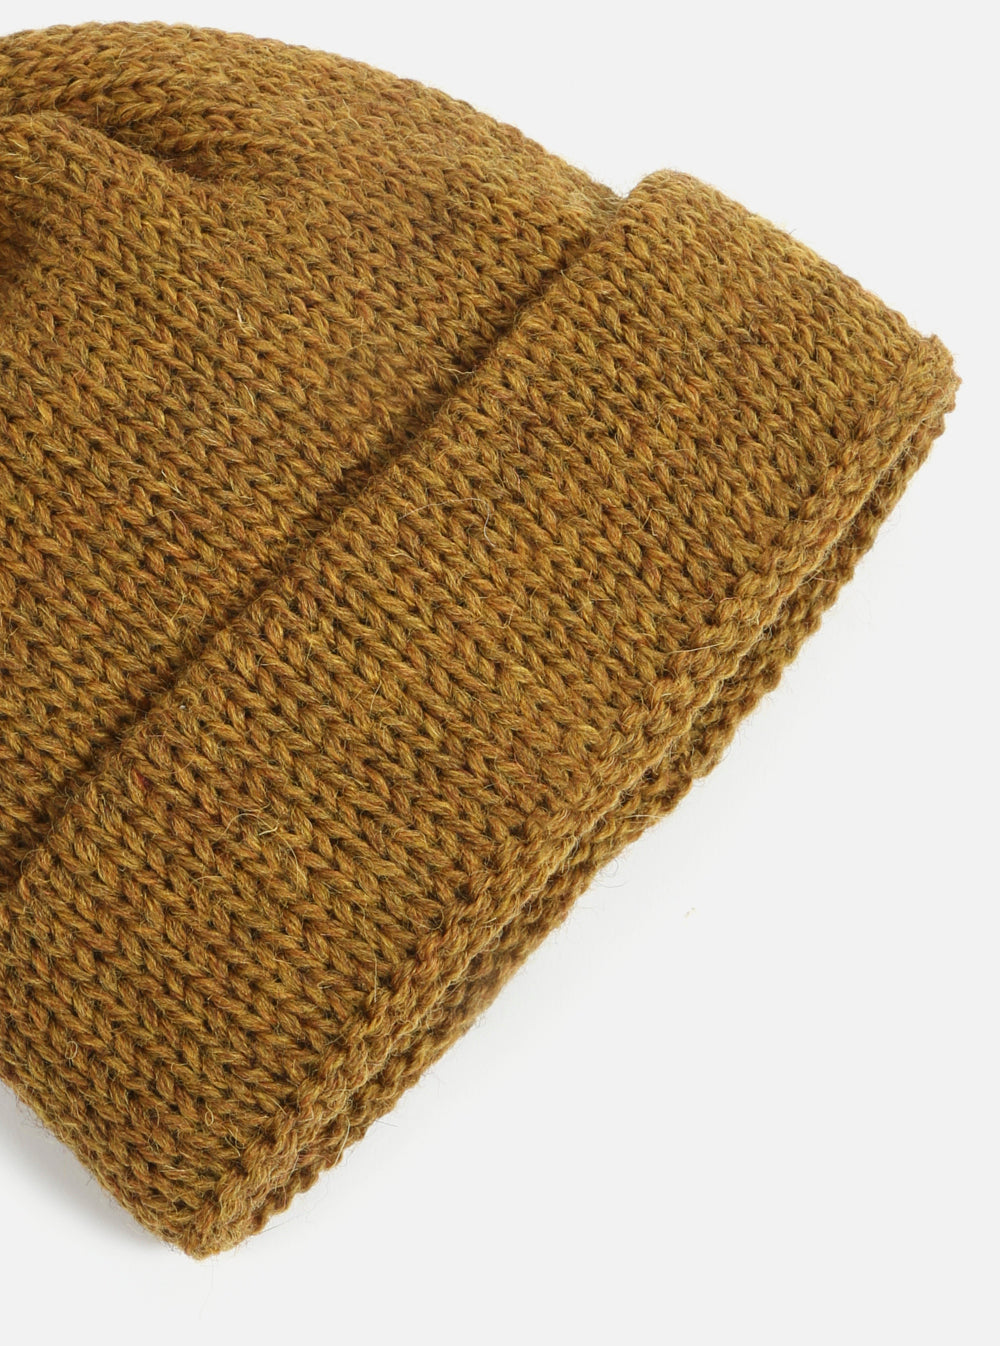 Short Watch Cap in Camel British Wool